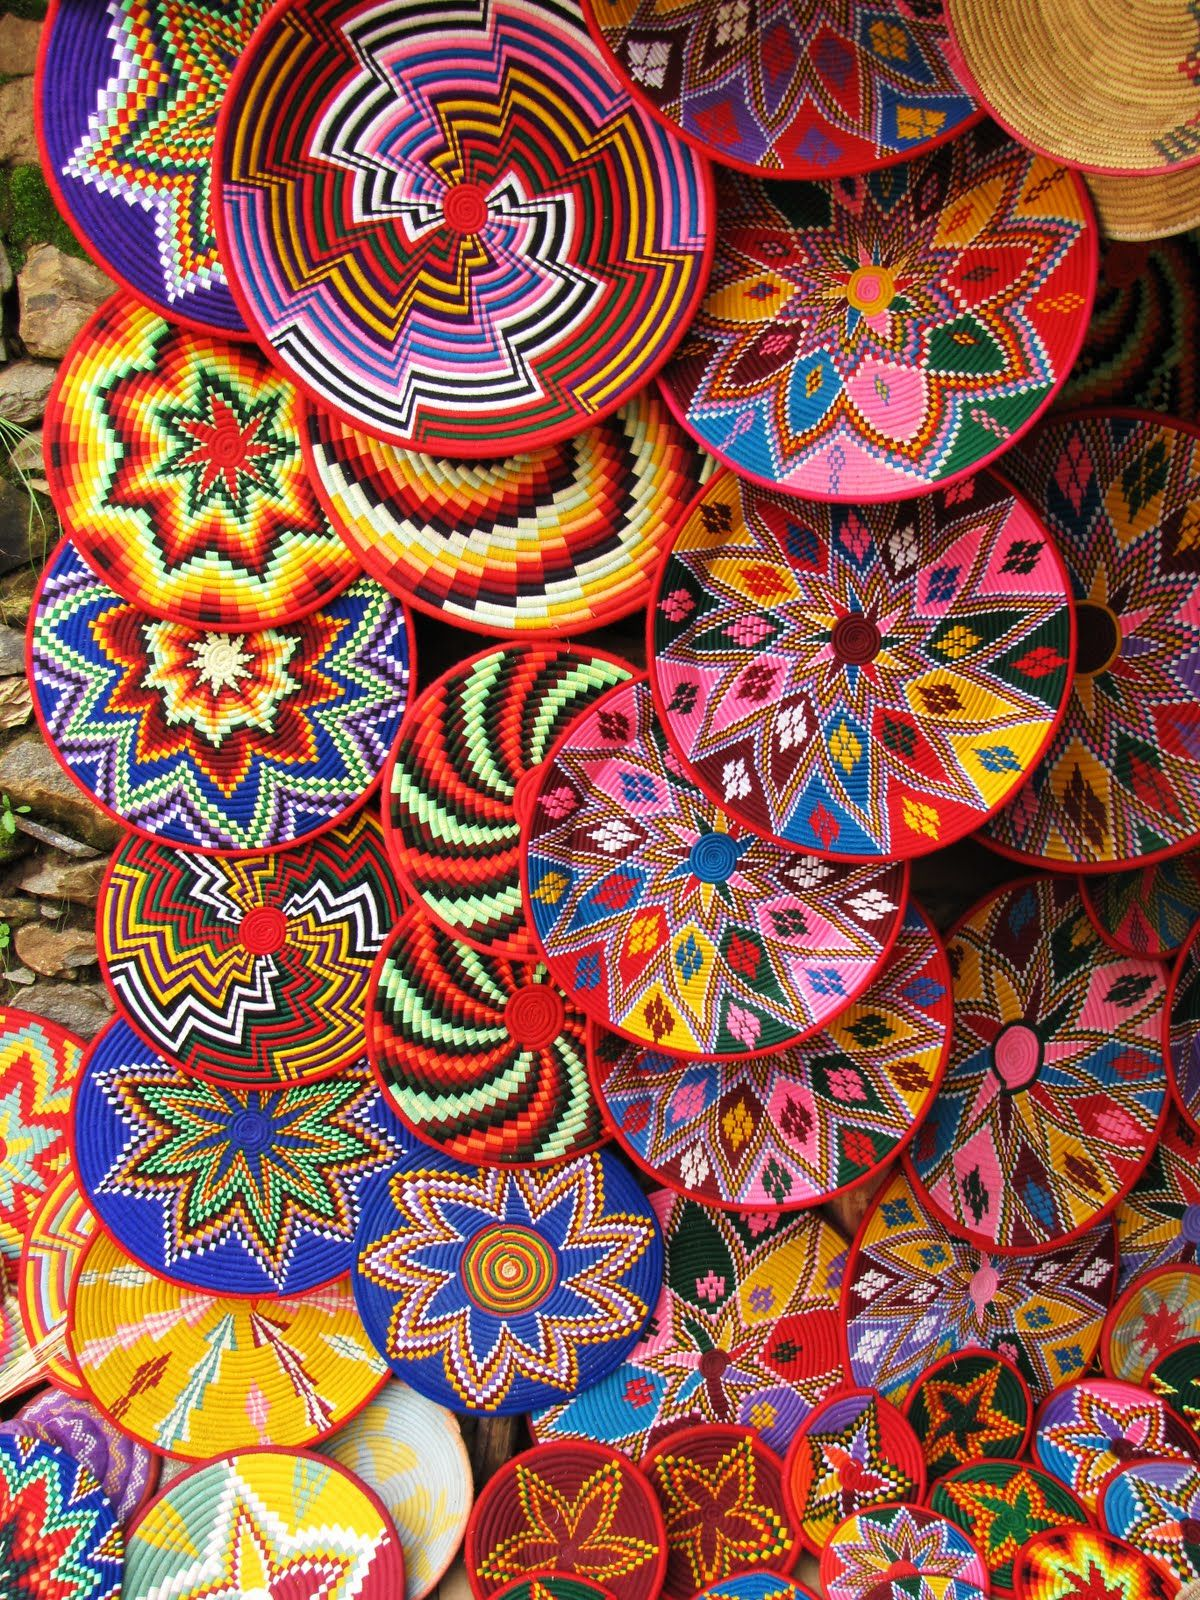 Ethiopian Art The Artist Explores Various Geometric Patterns Which Wiring Money To Ethiopia Reminds Me Of Metaphysical Flower Life